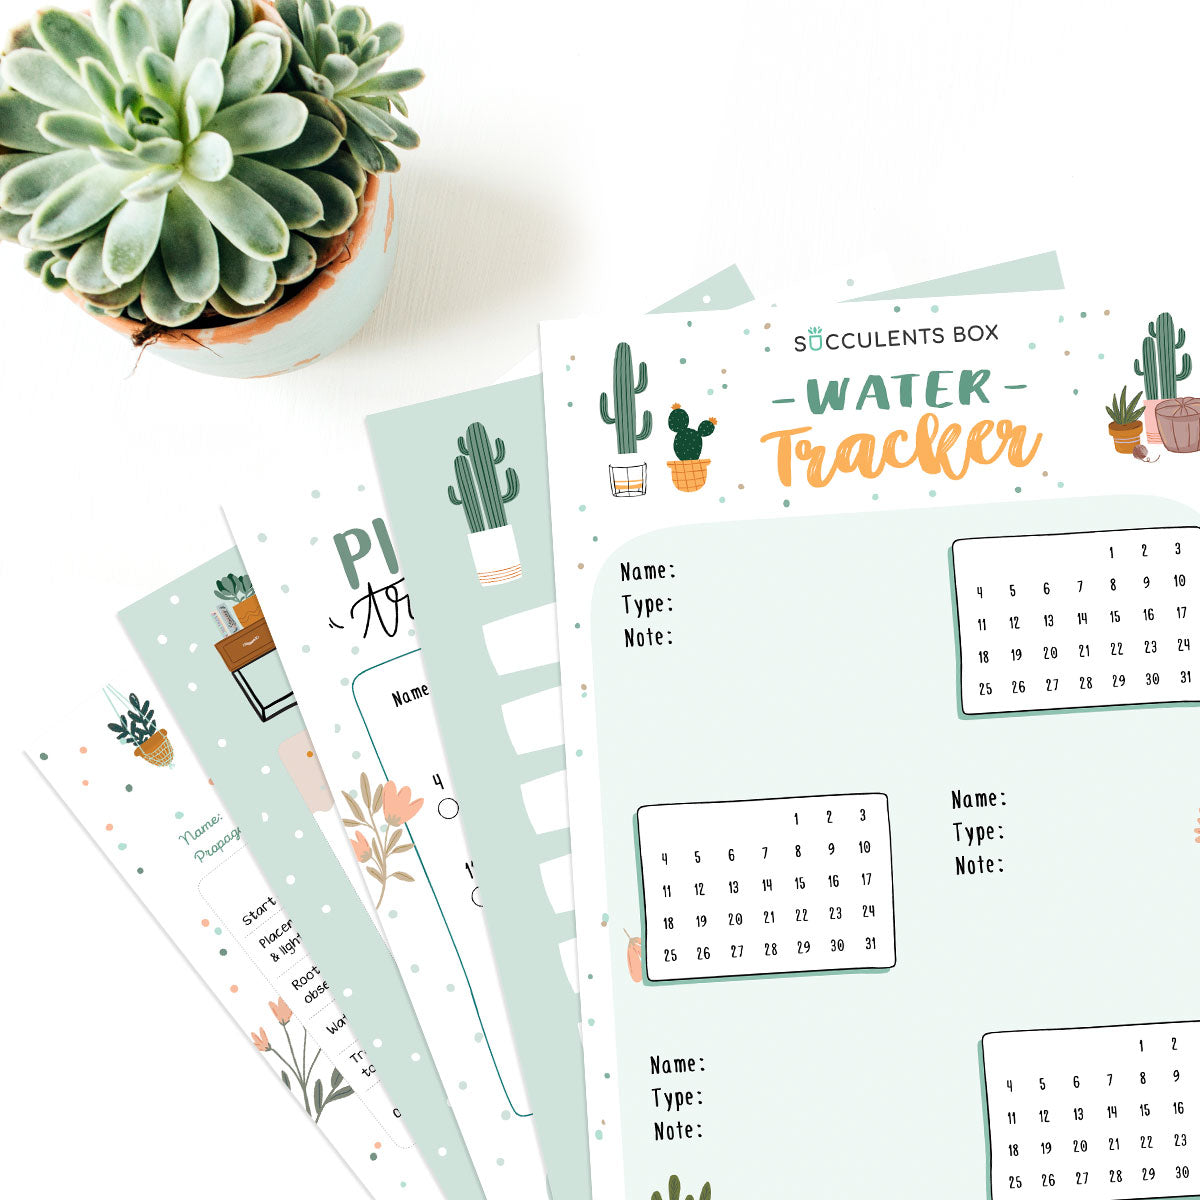 Printable Succulent Bullet Journal for free, Succulent gift for plant lovers, Printable for Journal or Planner, Succulent home office decor, Succulent printable template